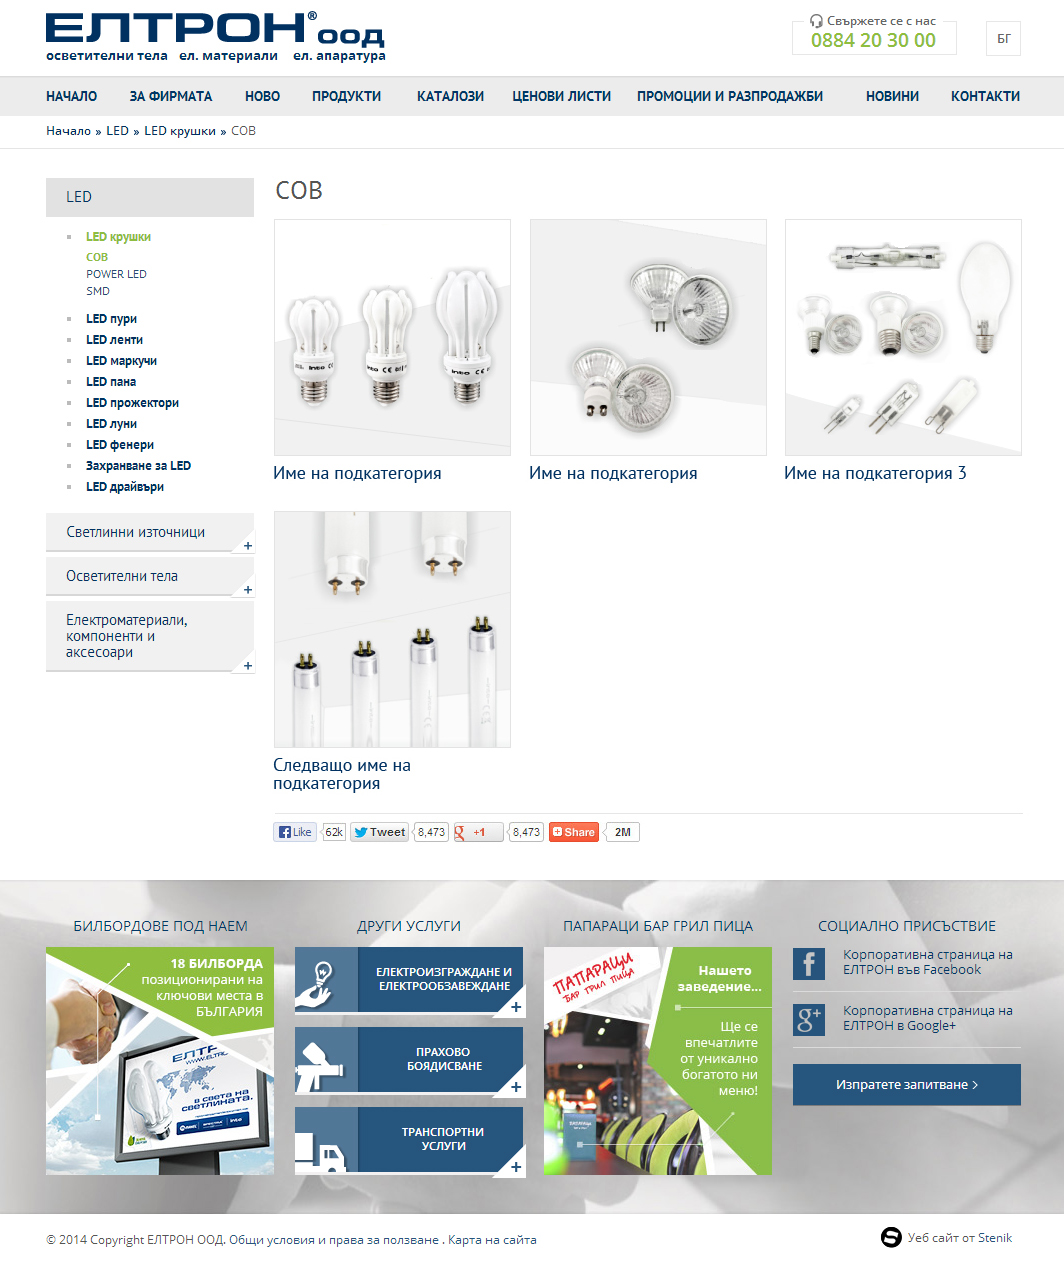 Website for Eltron Ltd., Eltron Ltd. - Web Sites, Stenik, StenikCMS